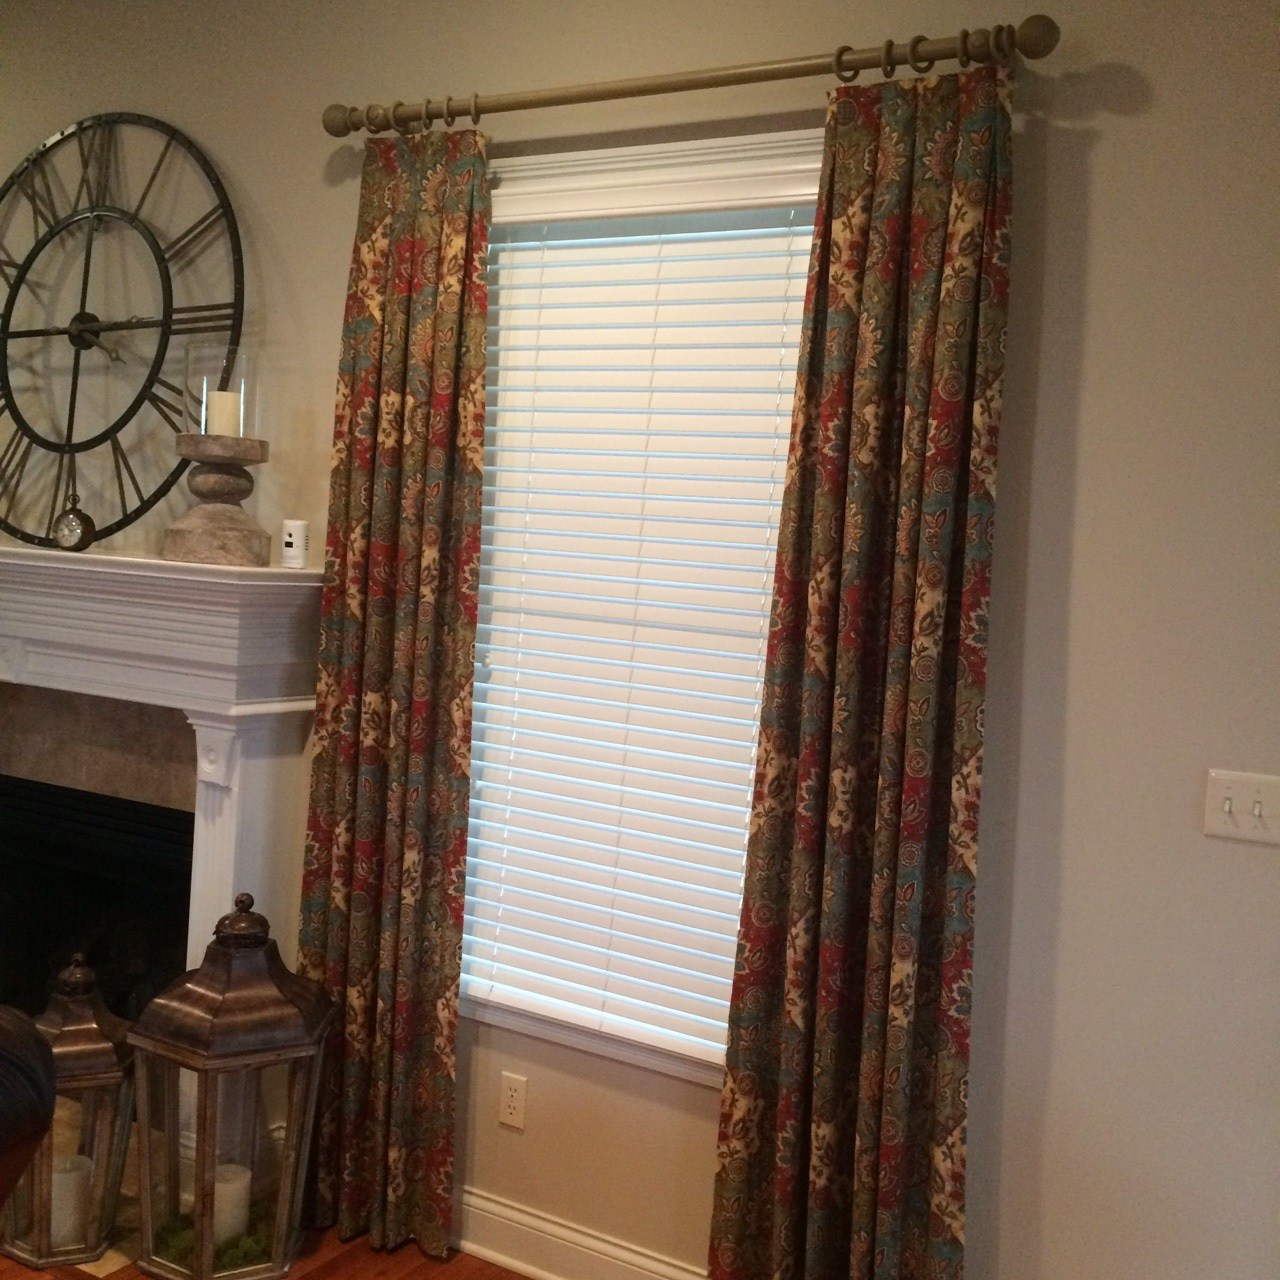 cusotm-window-treatments-long-drapery-panels